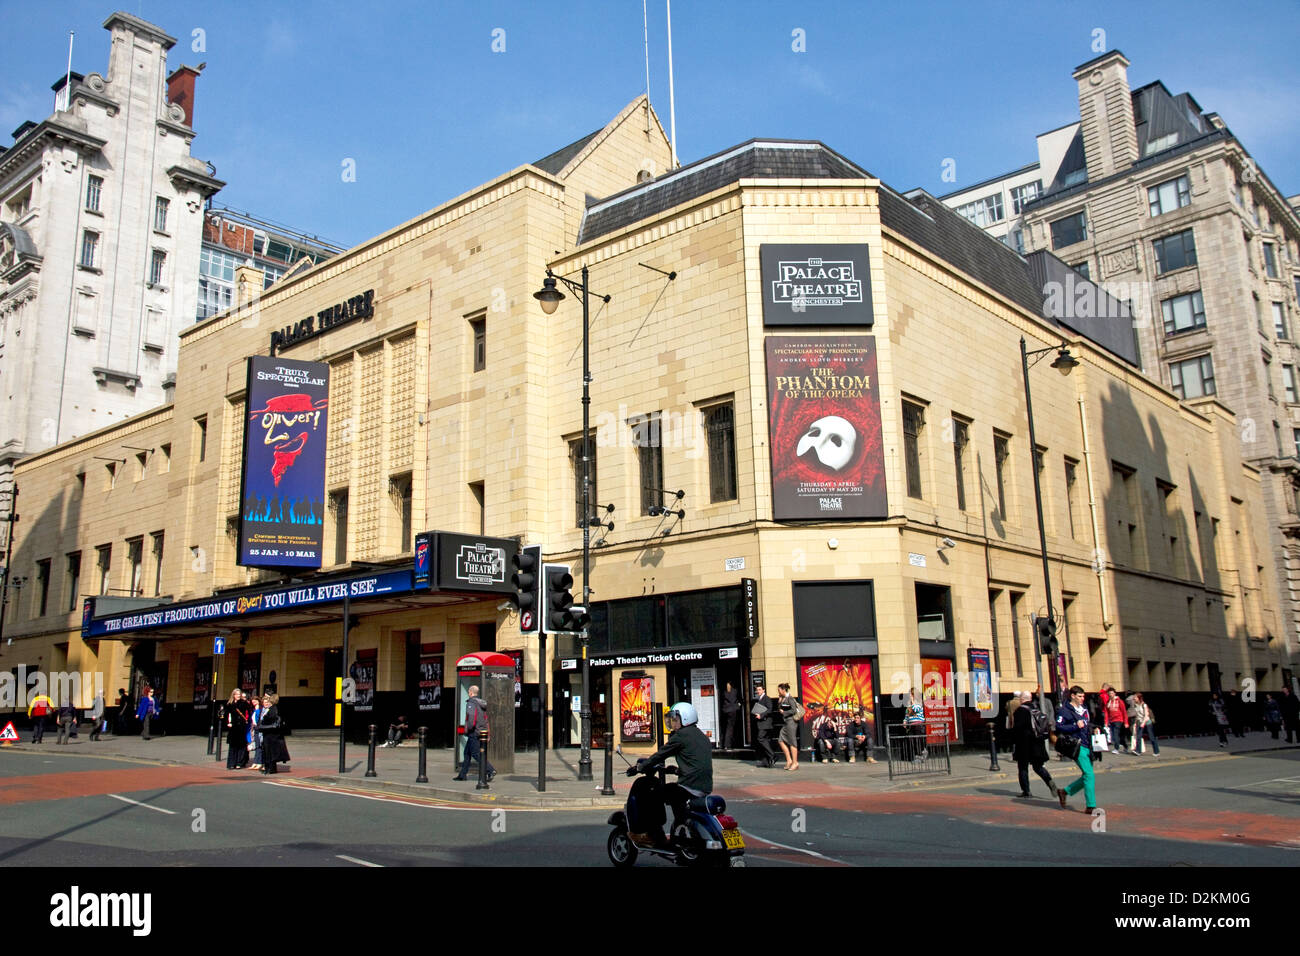 Palace Theatre, Oxford Street, city centre, Manchester, England, UK - Stock Image